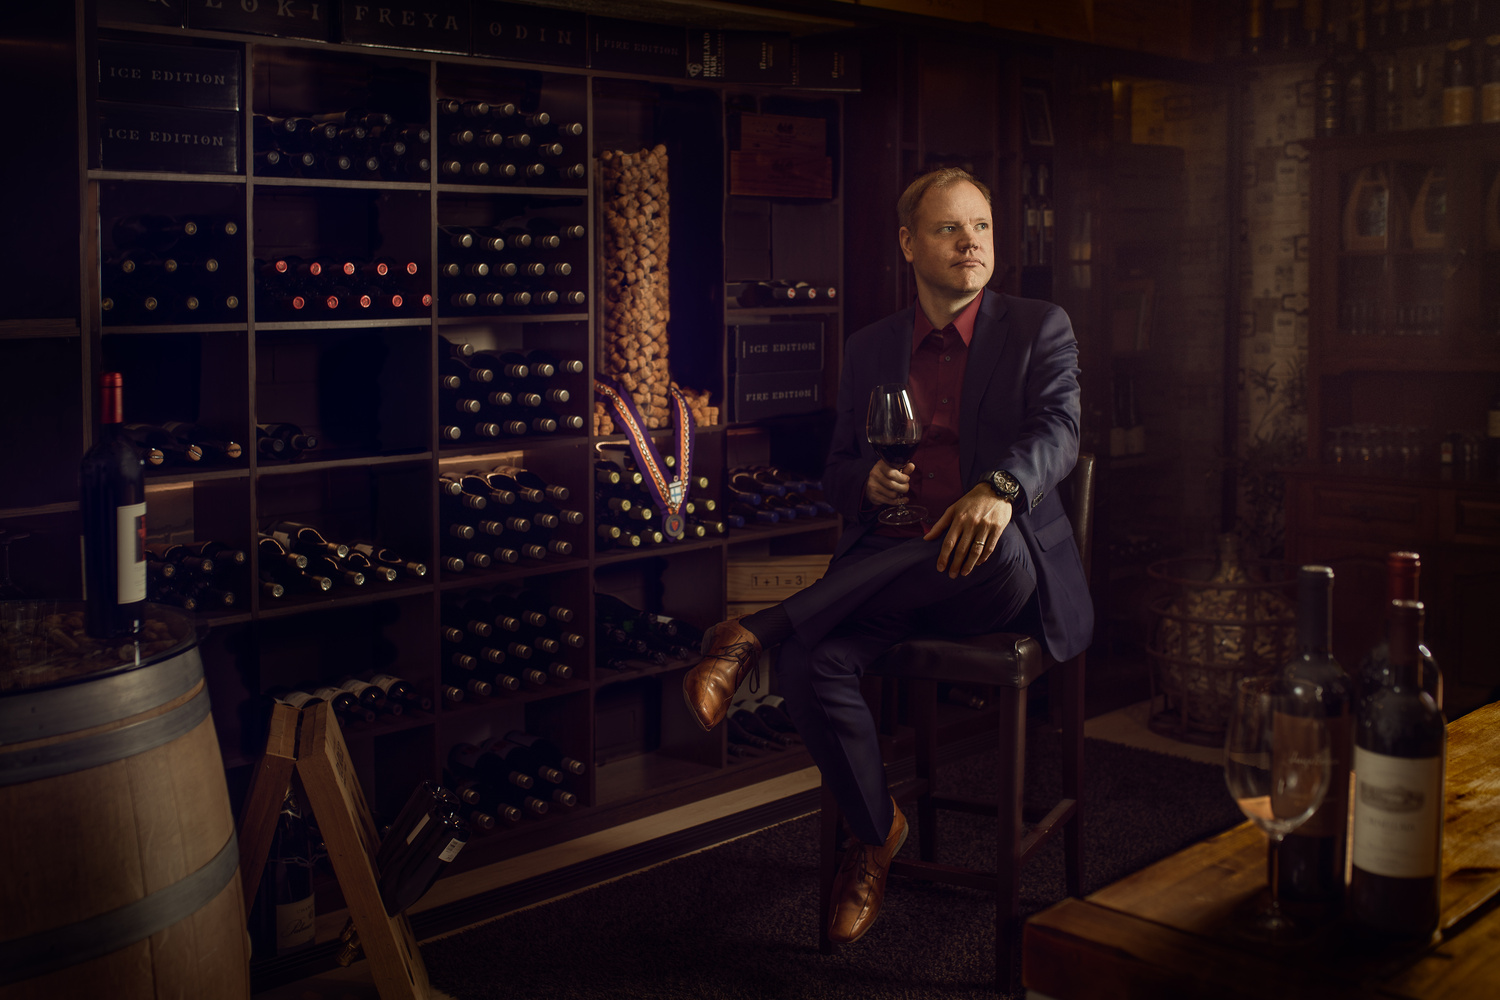 Portrait of the wine taster by Sanna Vornanen